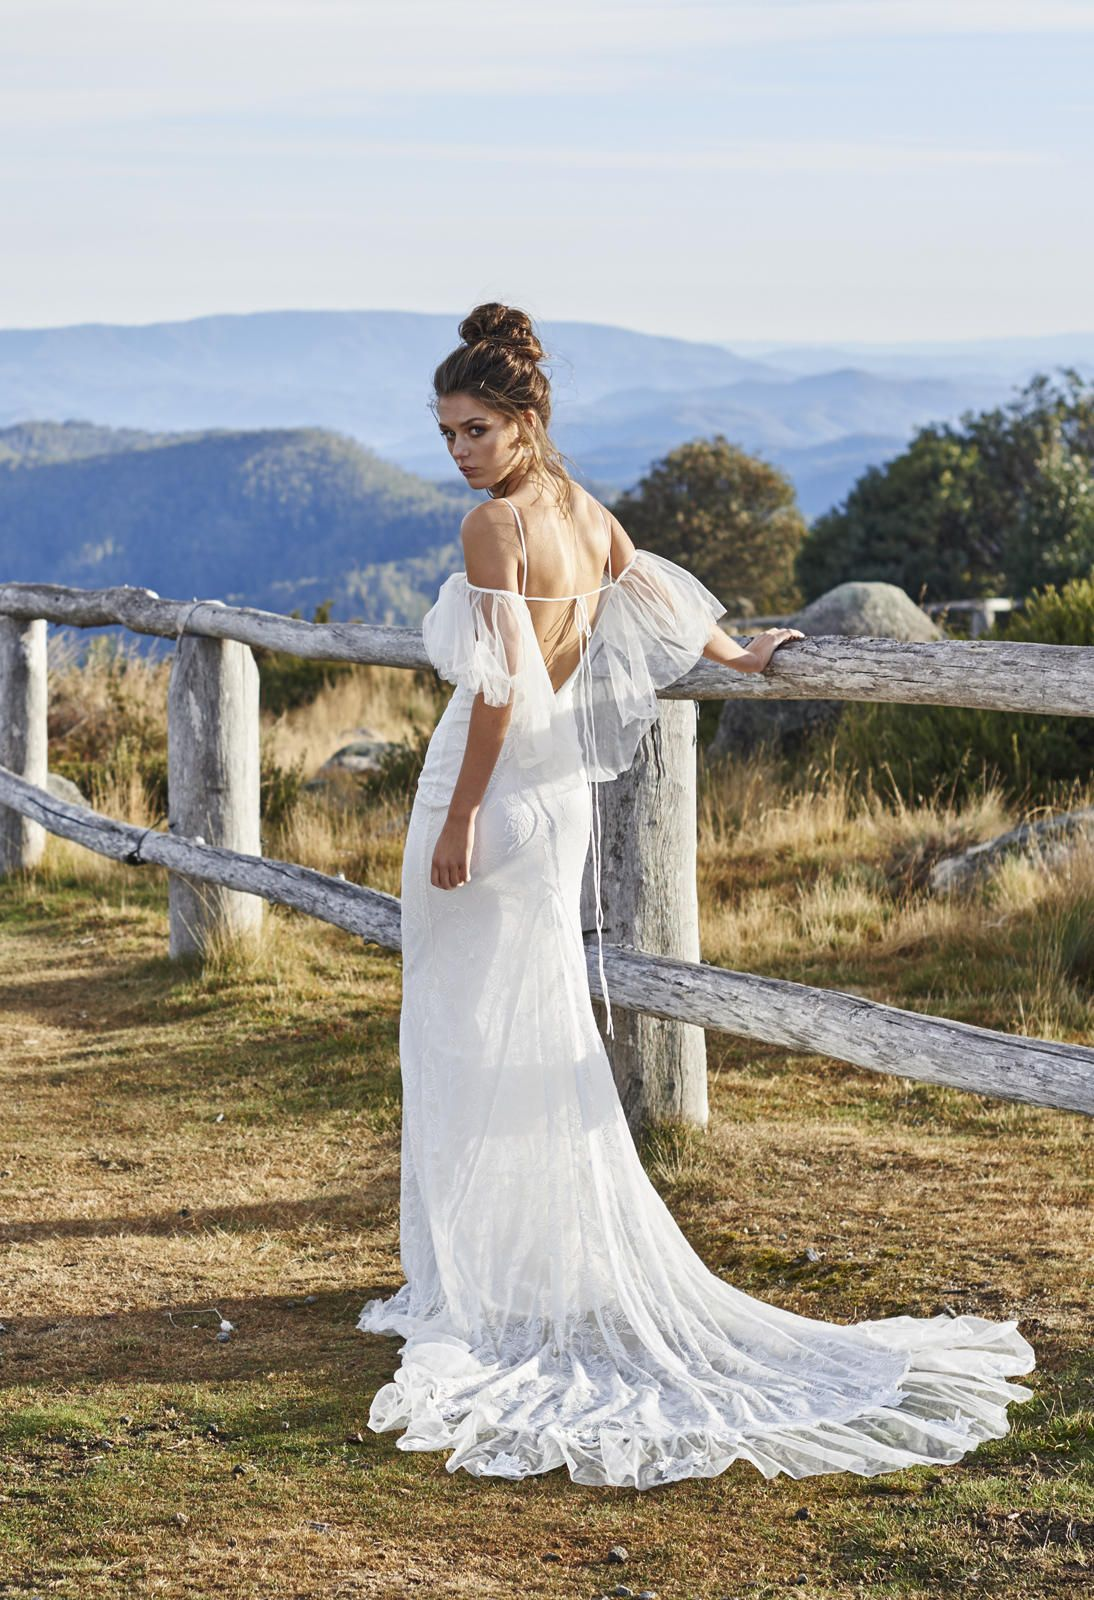 Grace loves lace wedding dresses rustic style weddings gowns and